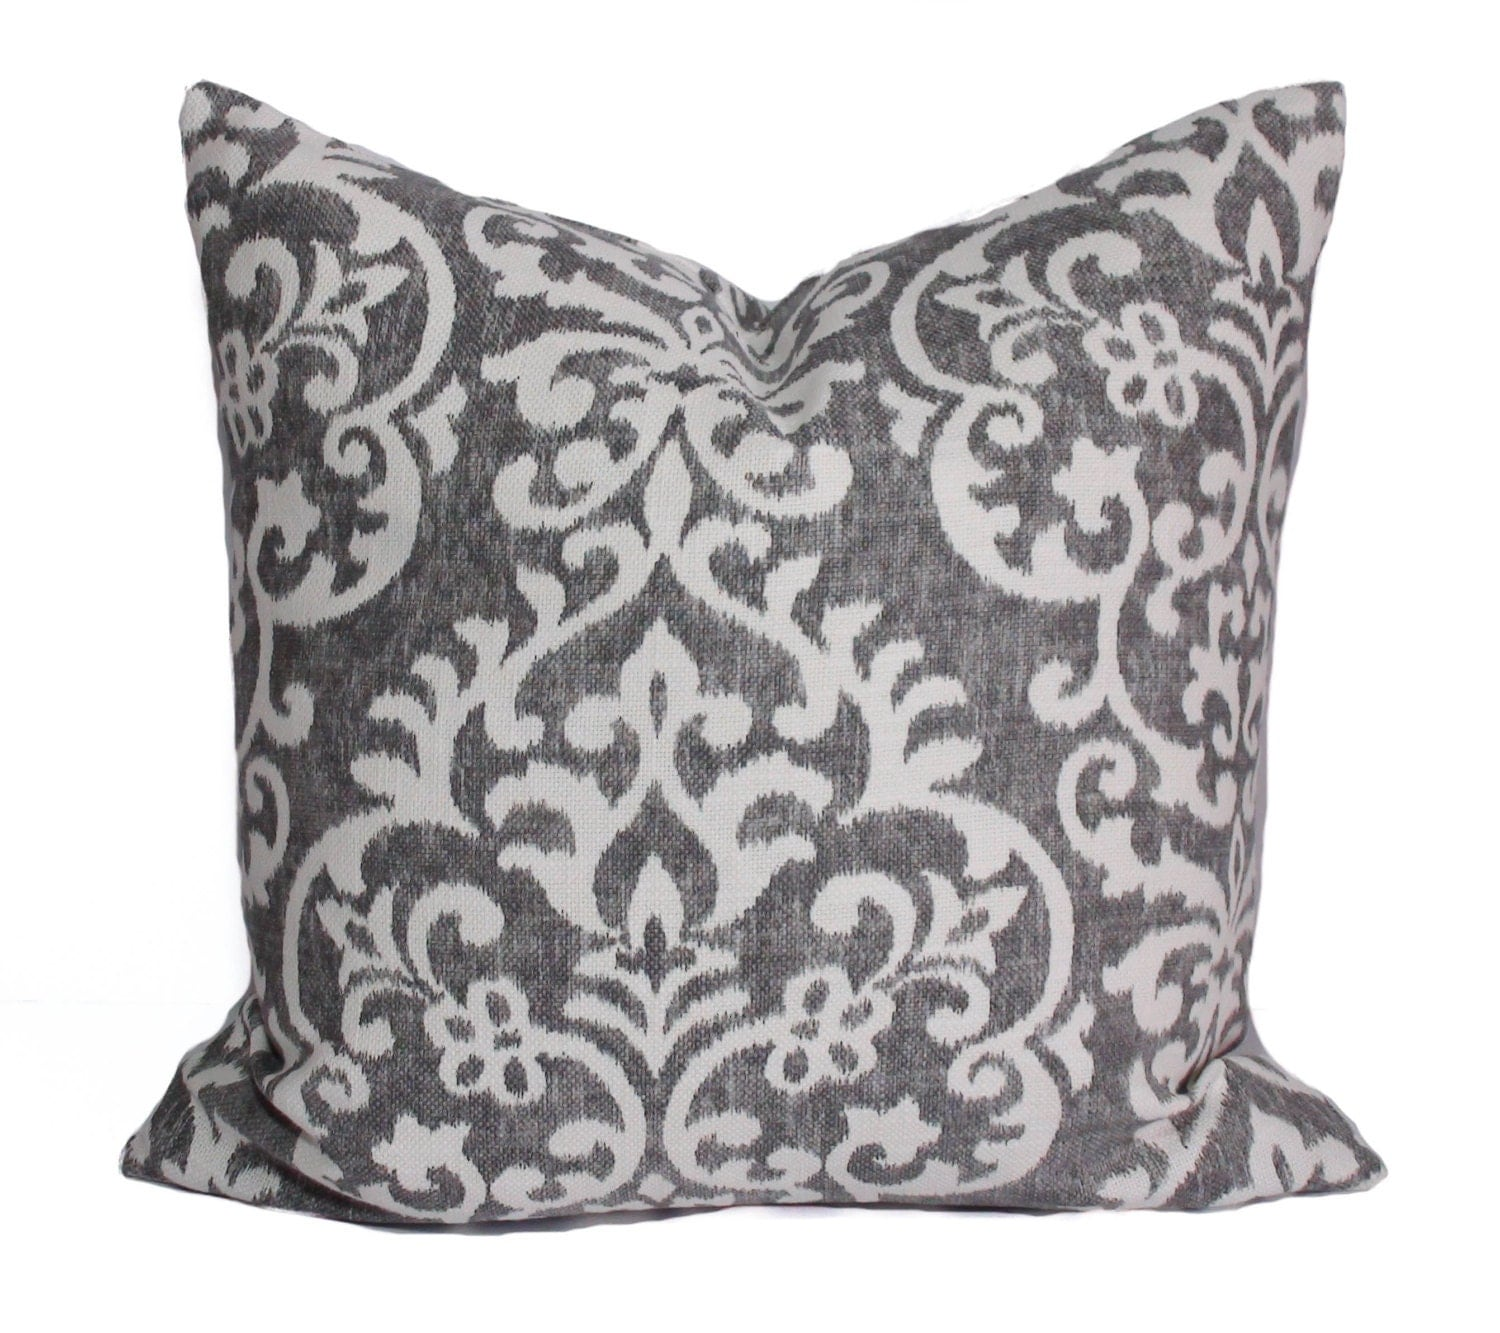 Gray Couch Pillows: Grey Decorative Pillow Grey Pillow Cover Throw Pillow Couch